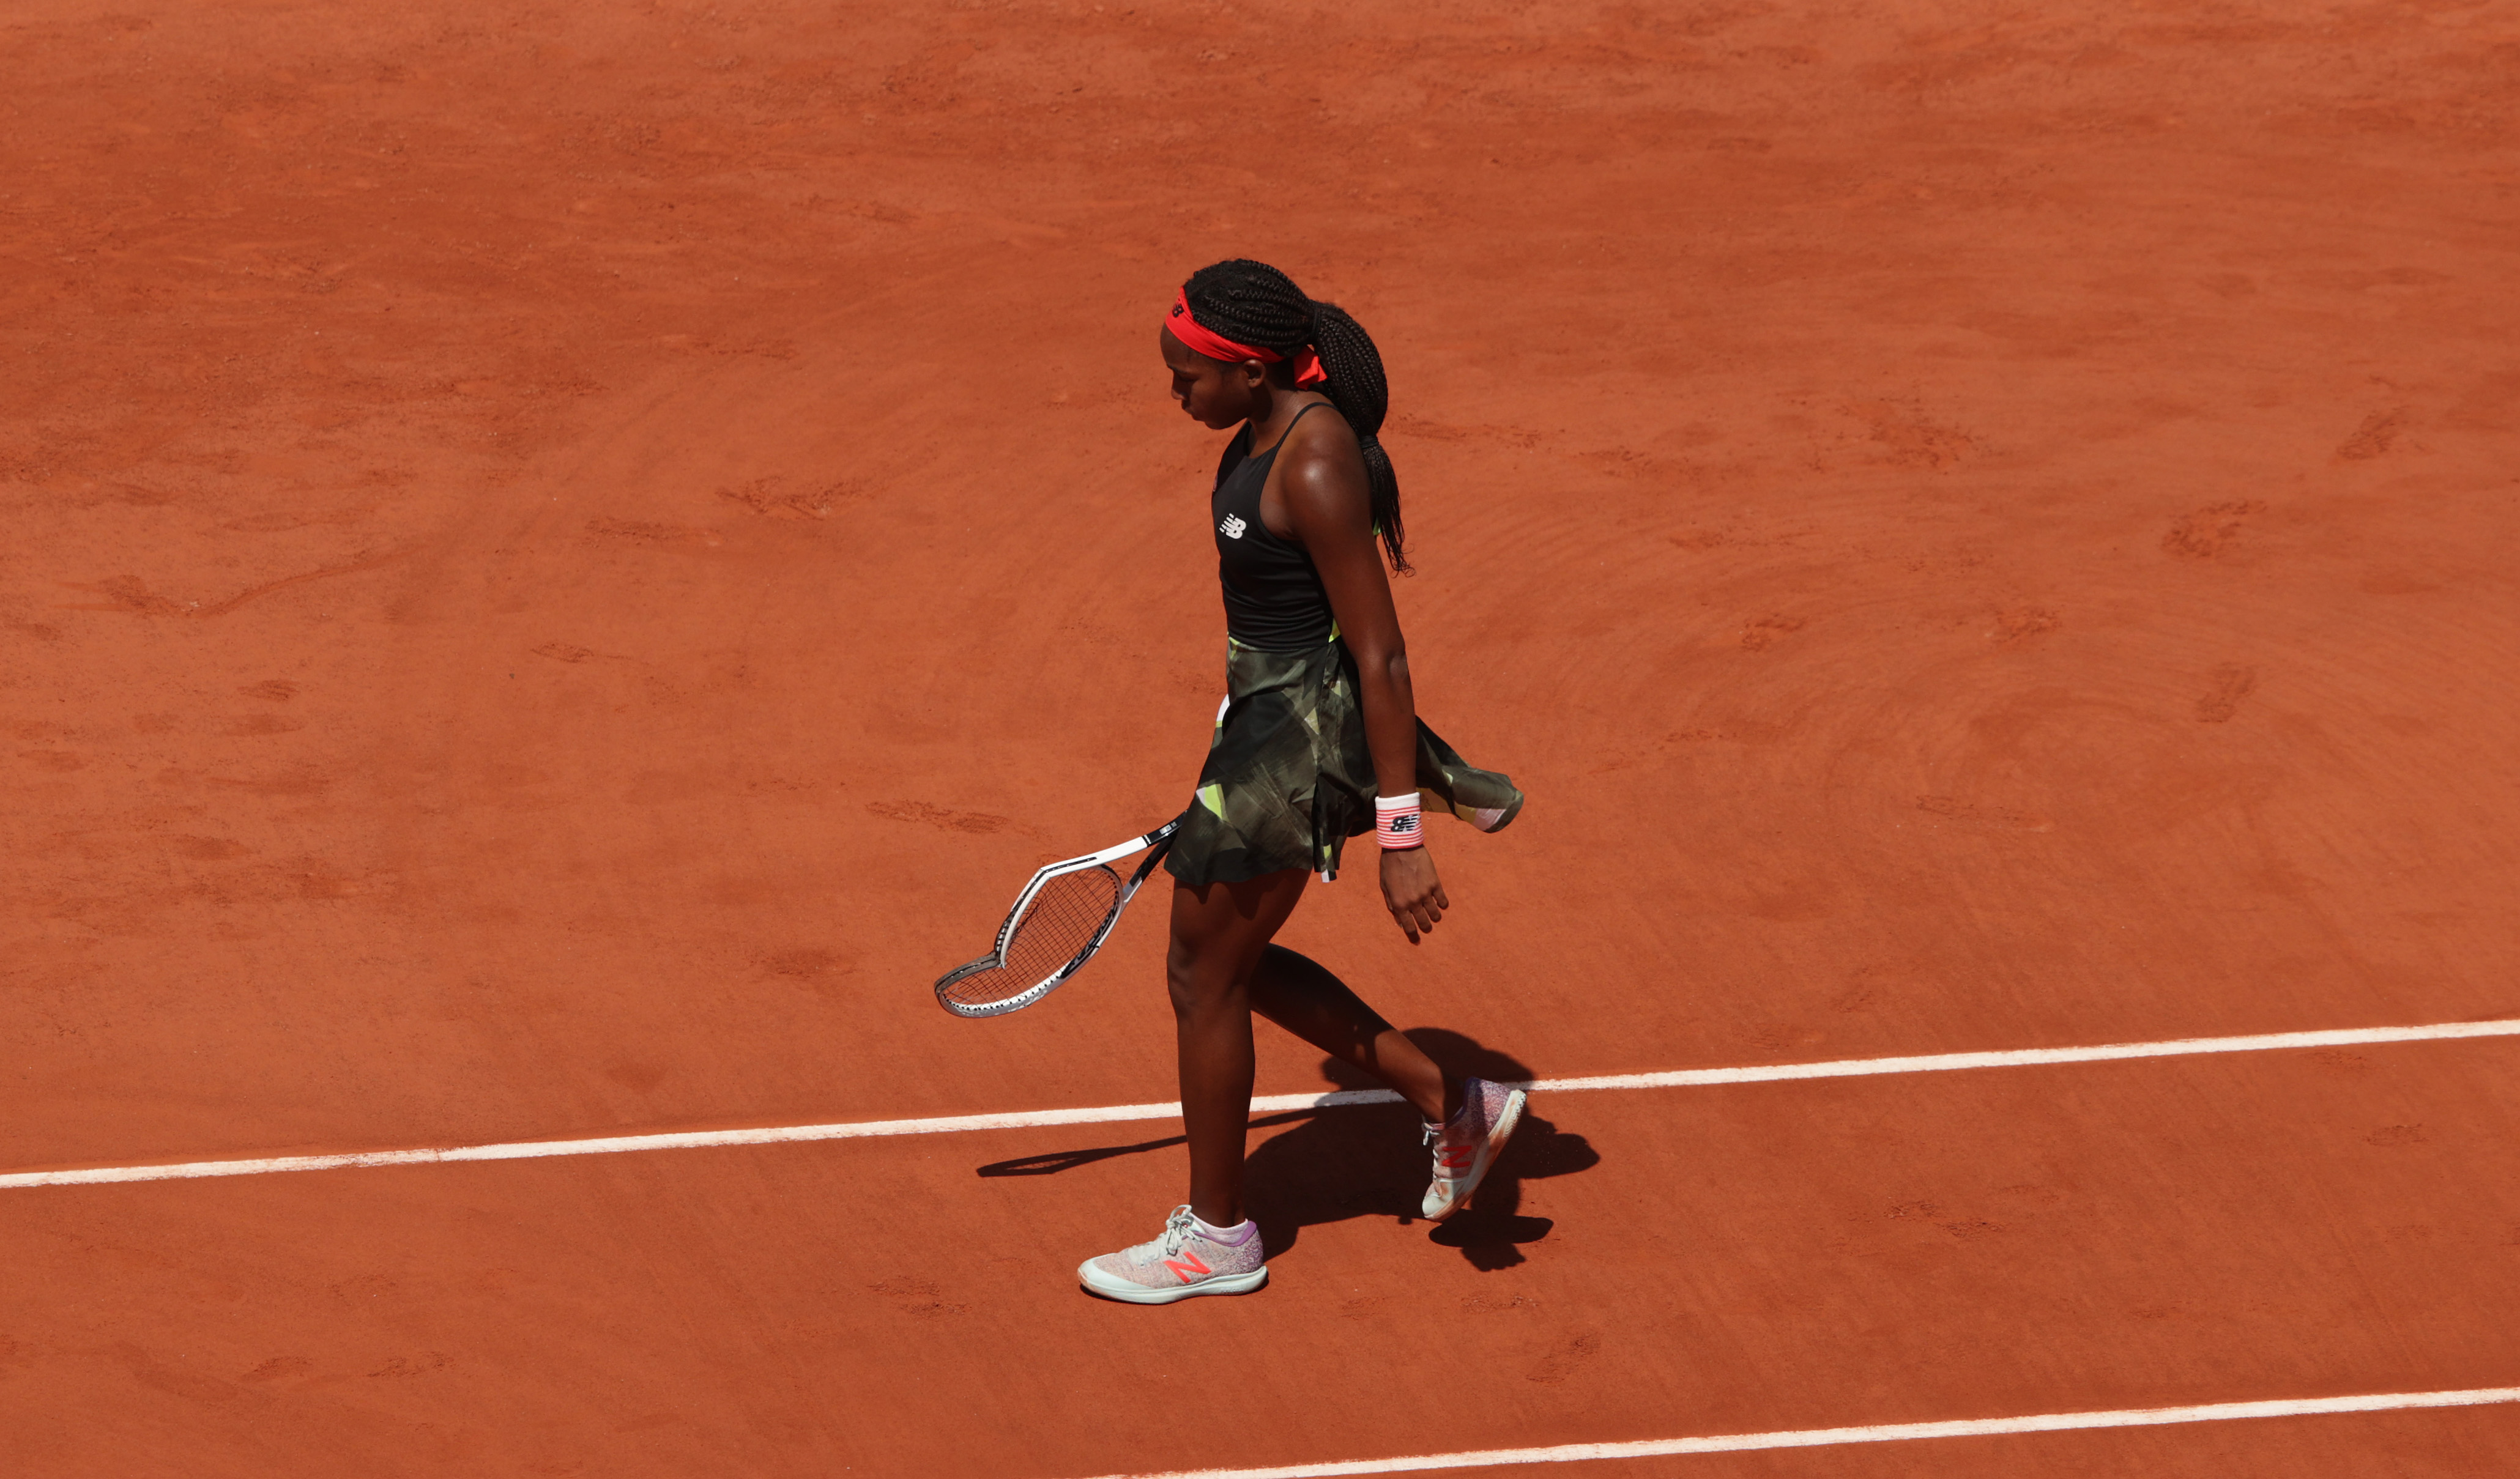 Coco Gauff smashes racquet as run at French Open comes to an end against Barbora Krejcikova